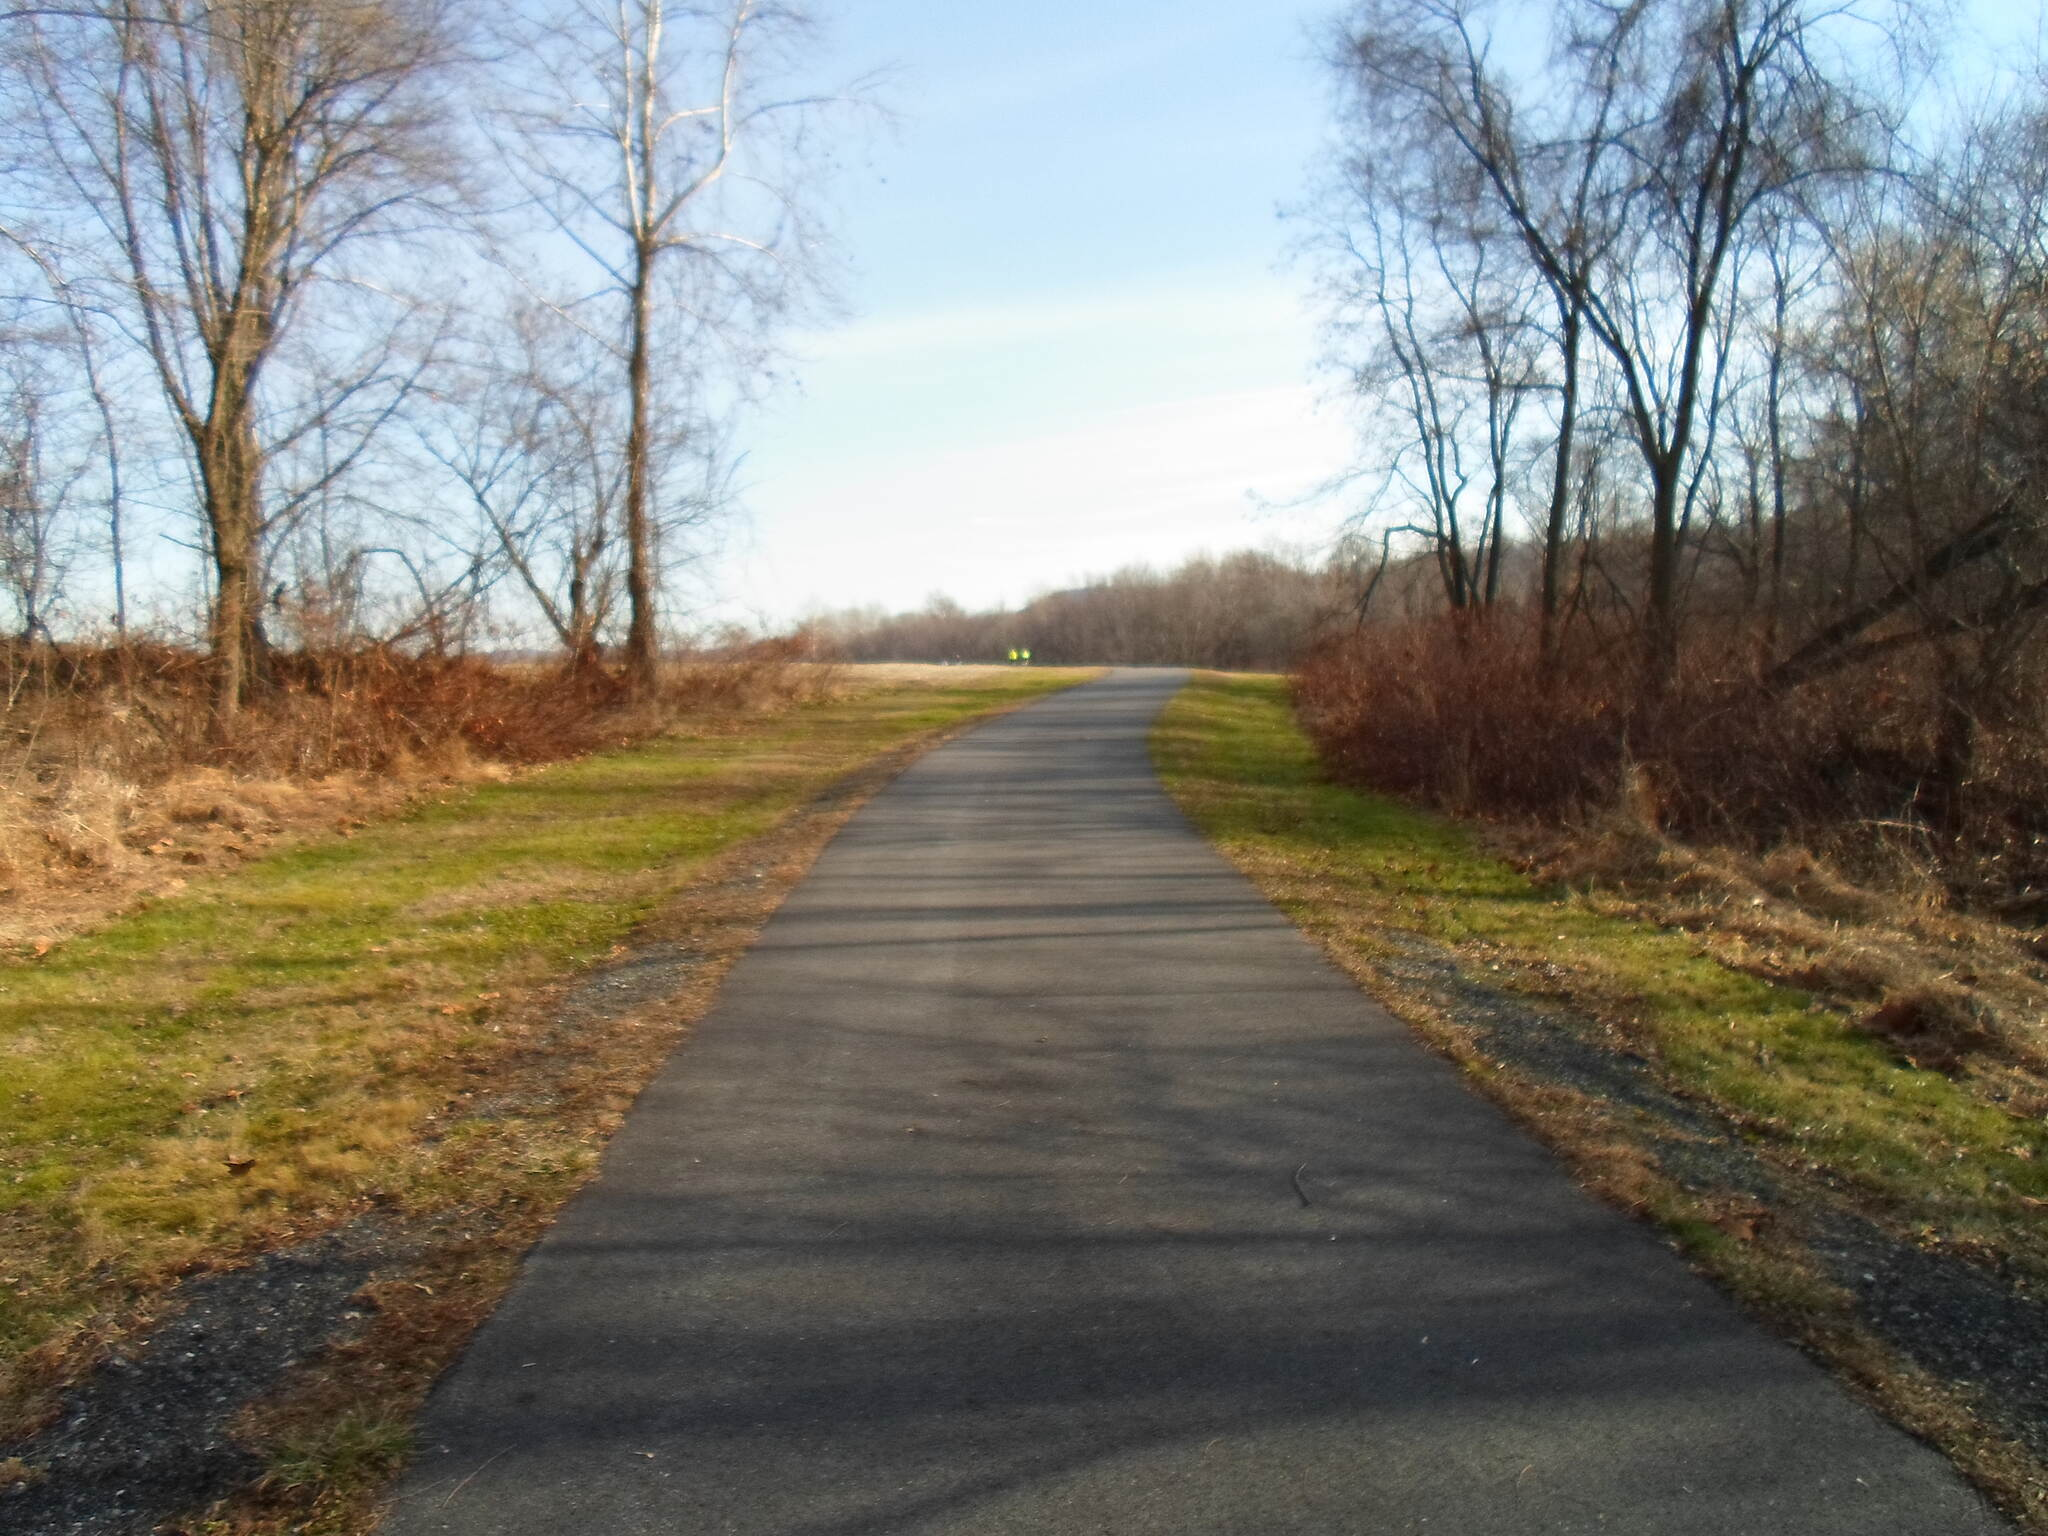 Northwest Lancaster County River Trail Northwest River Trail Scene on an unusually warm, early winter day. Taken Dec. 2014.